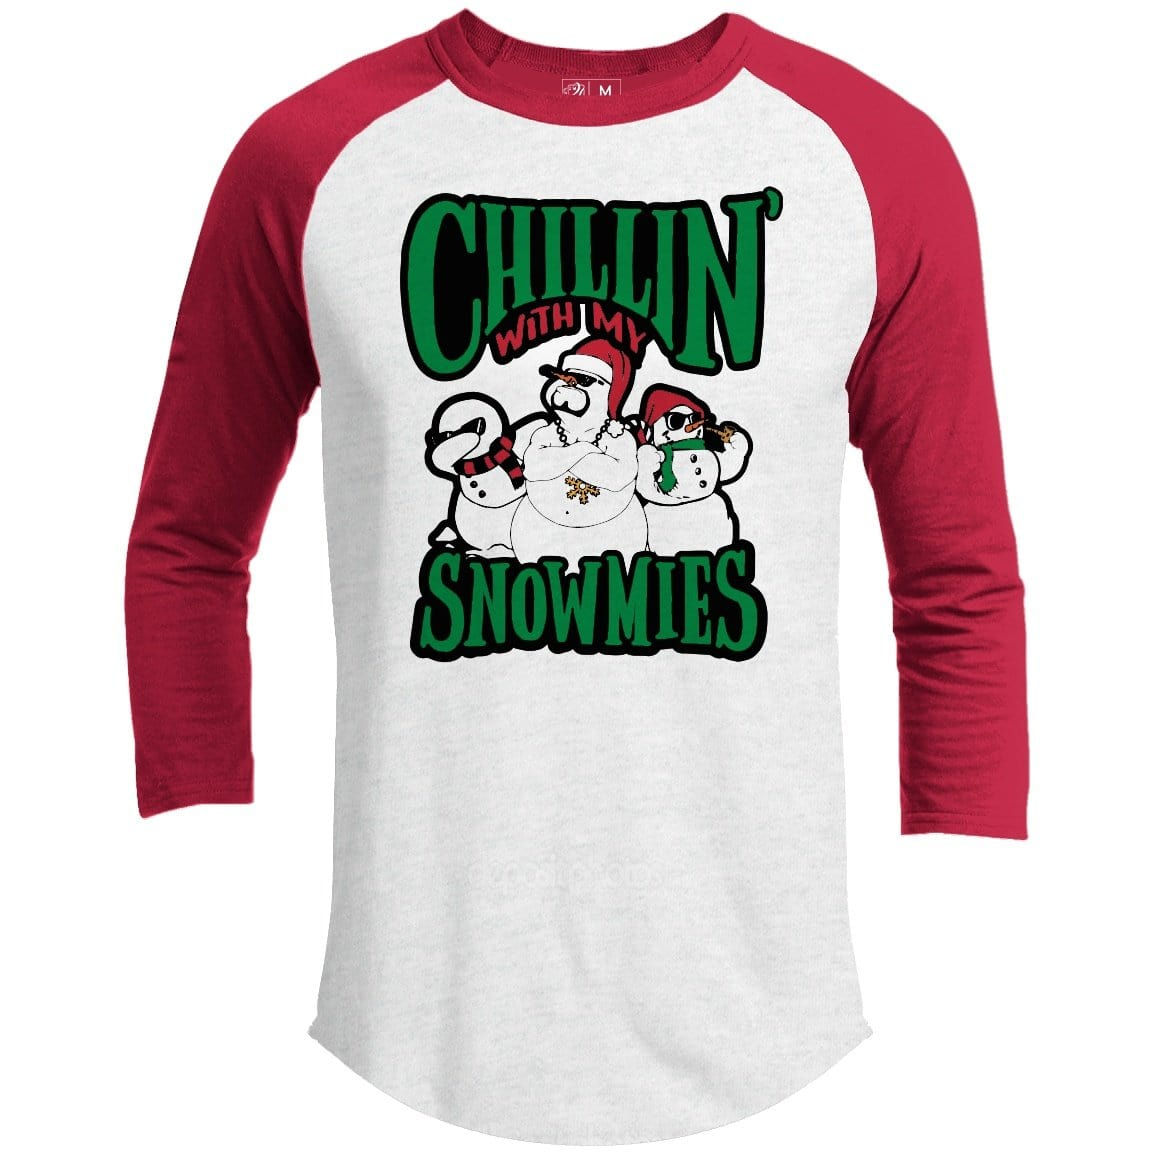 Chillin' With My Snowmies Premium Youth Christmas Raglan